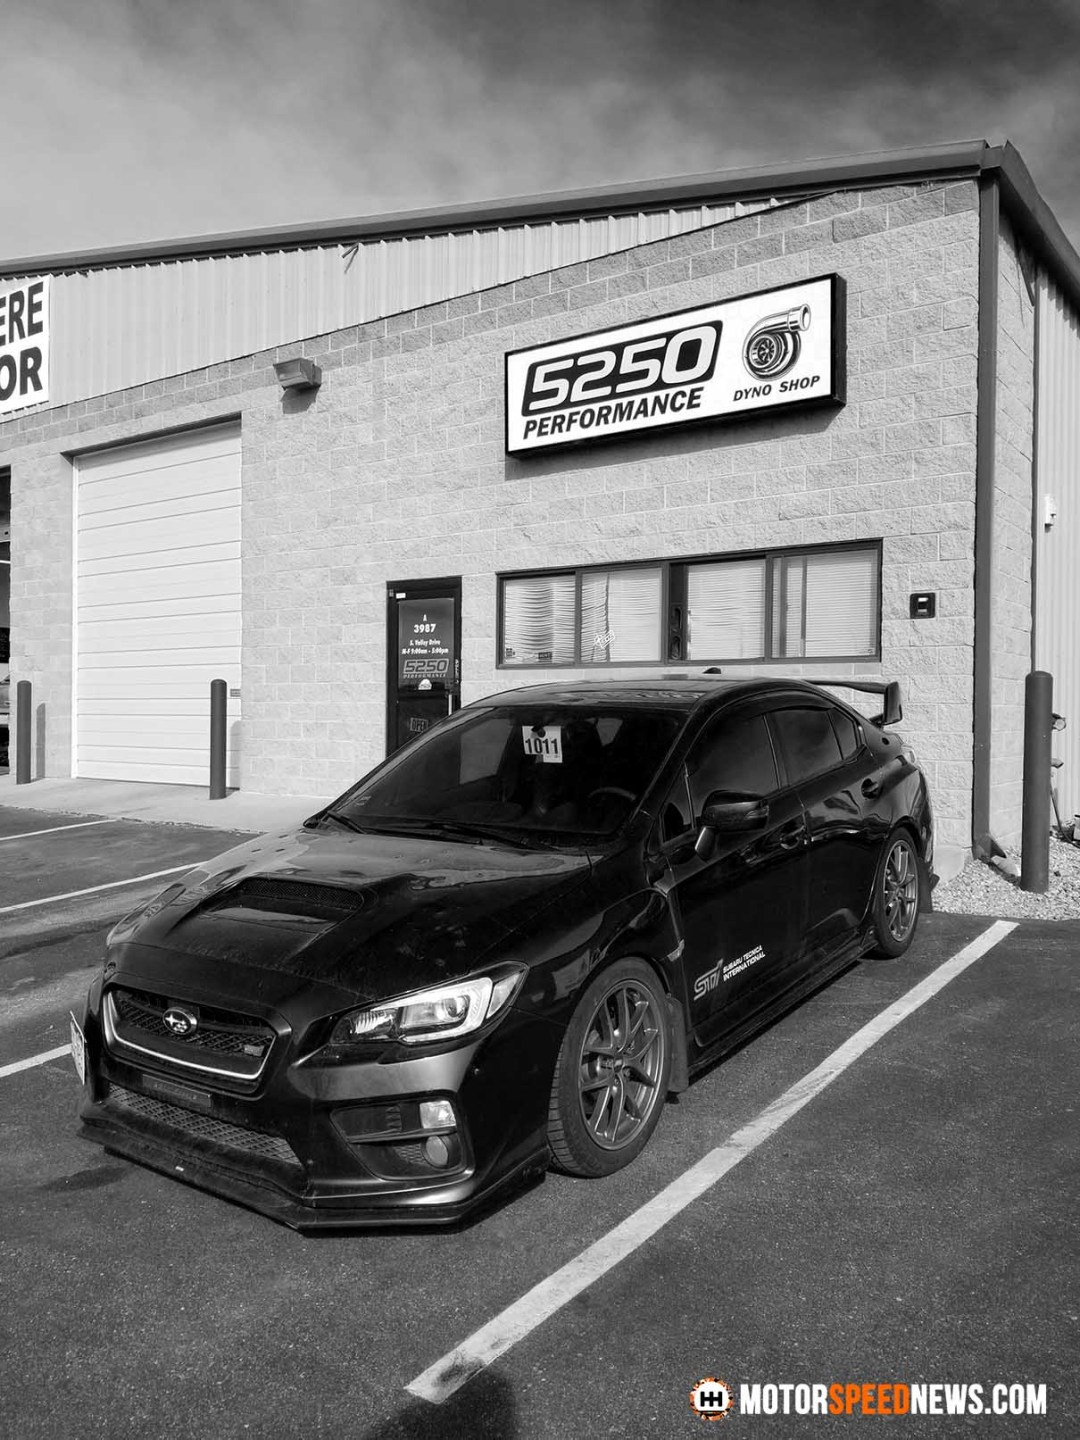 5250 Performance Longmont CO